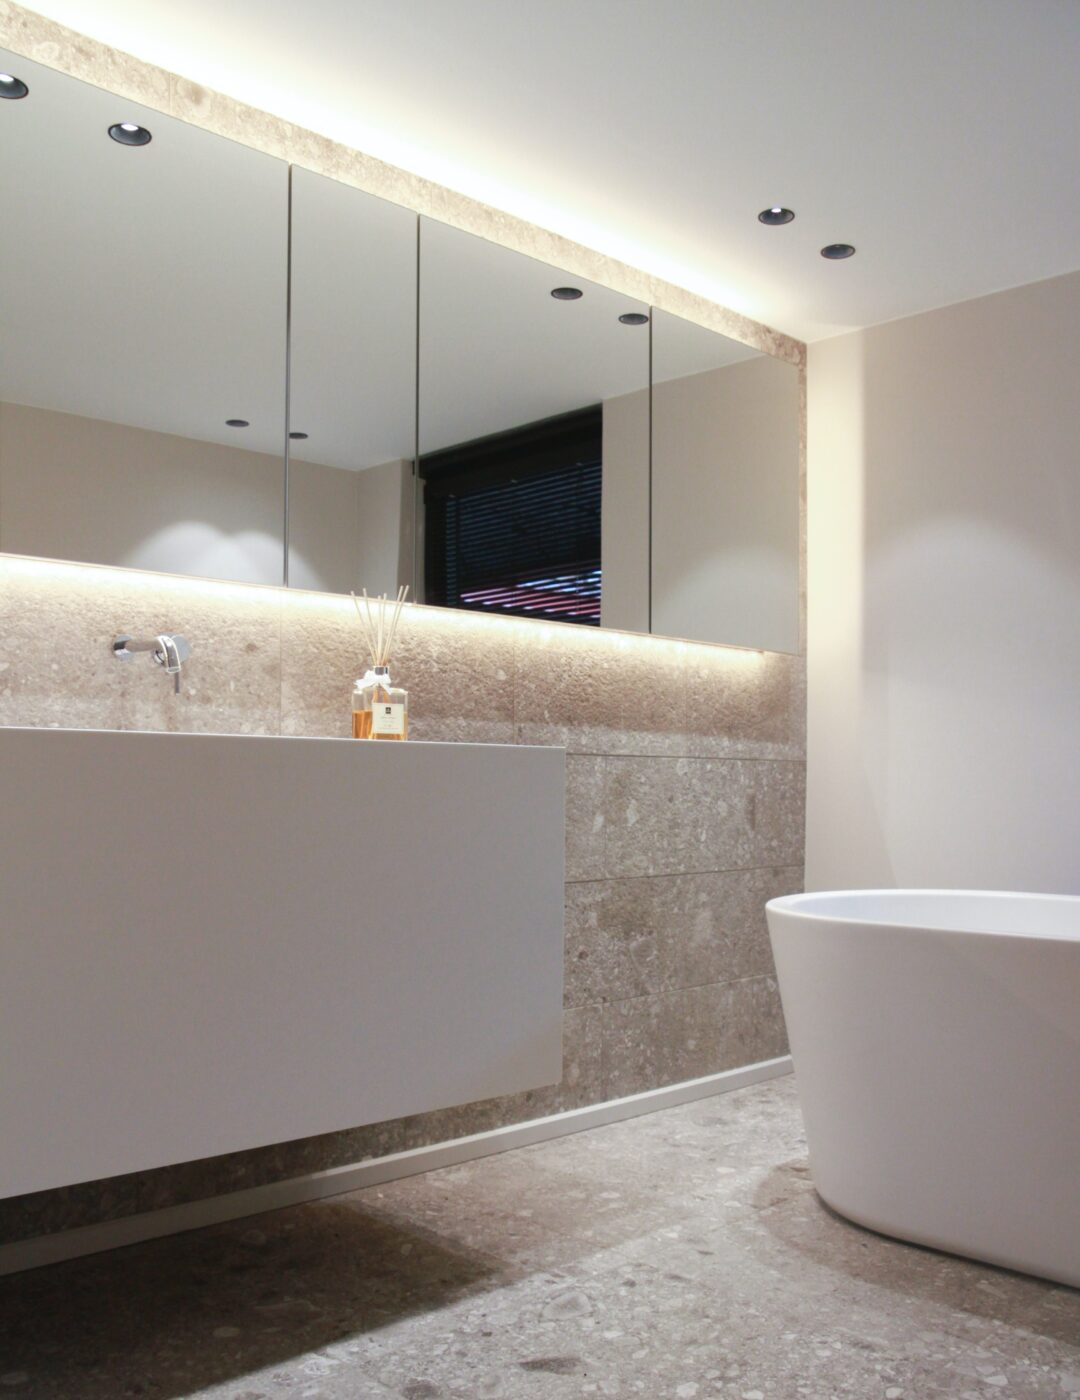 Upgrade Your Bathroom Lighting in Brisbane today. Contact Allyn White Electrical for more information.